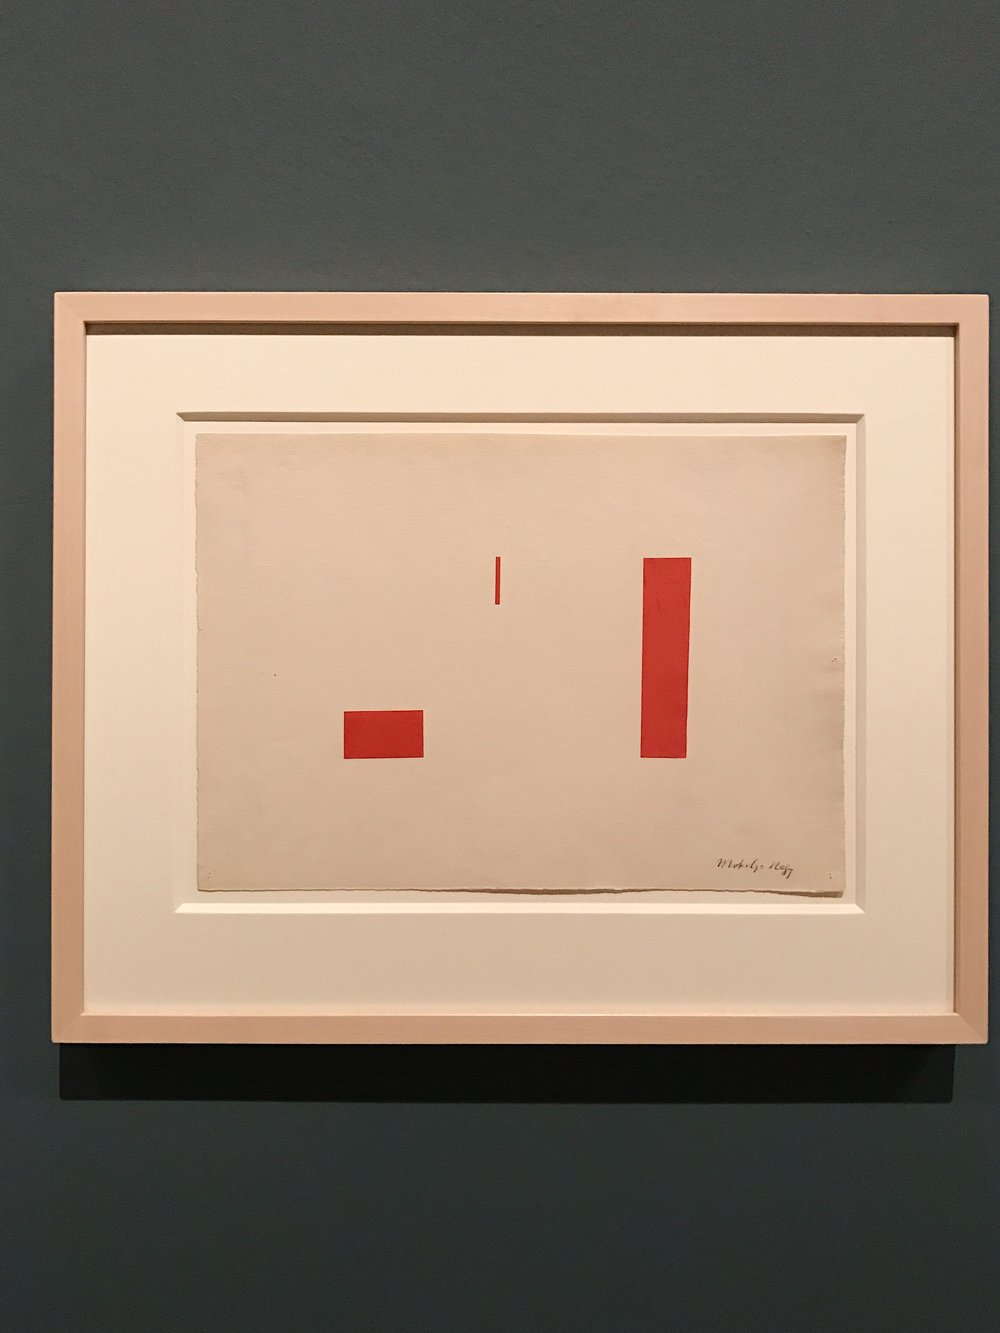 László Moholy-Nagy, Unknown title, 1920–21, gouache, collage, and graphite on paper